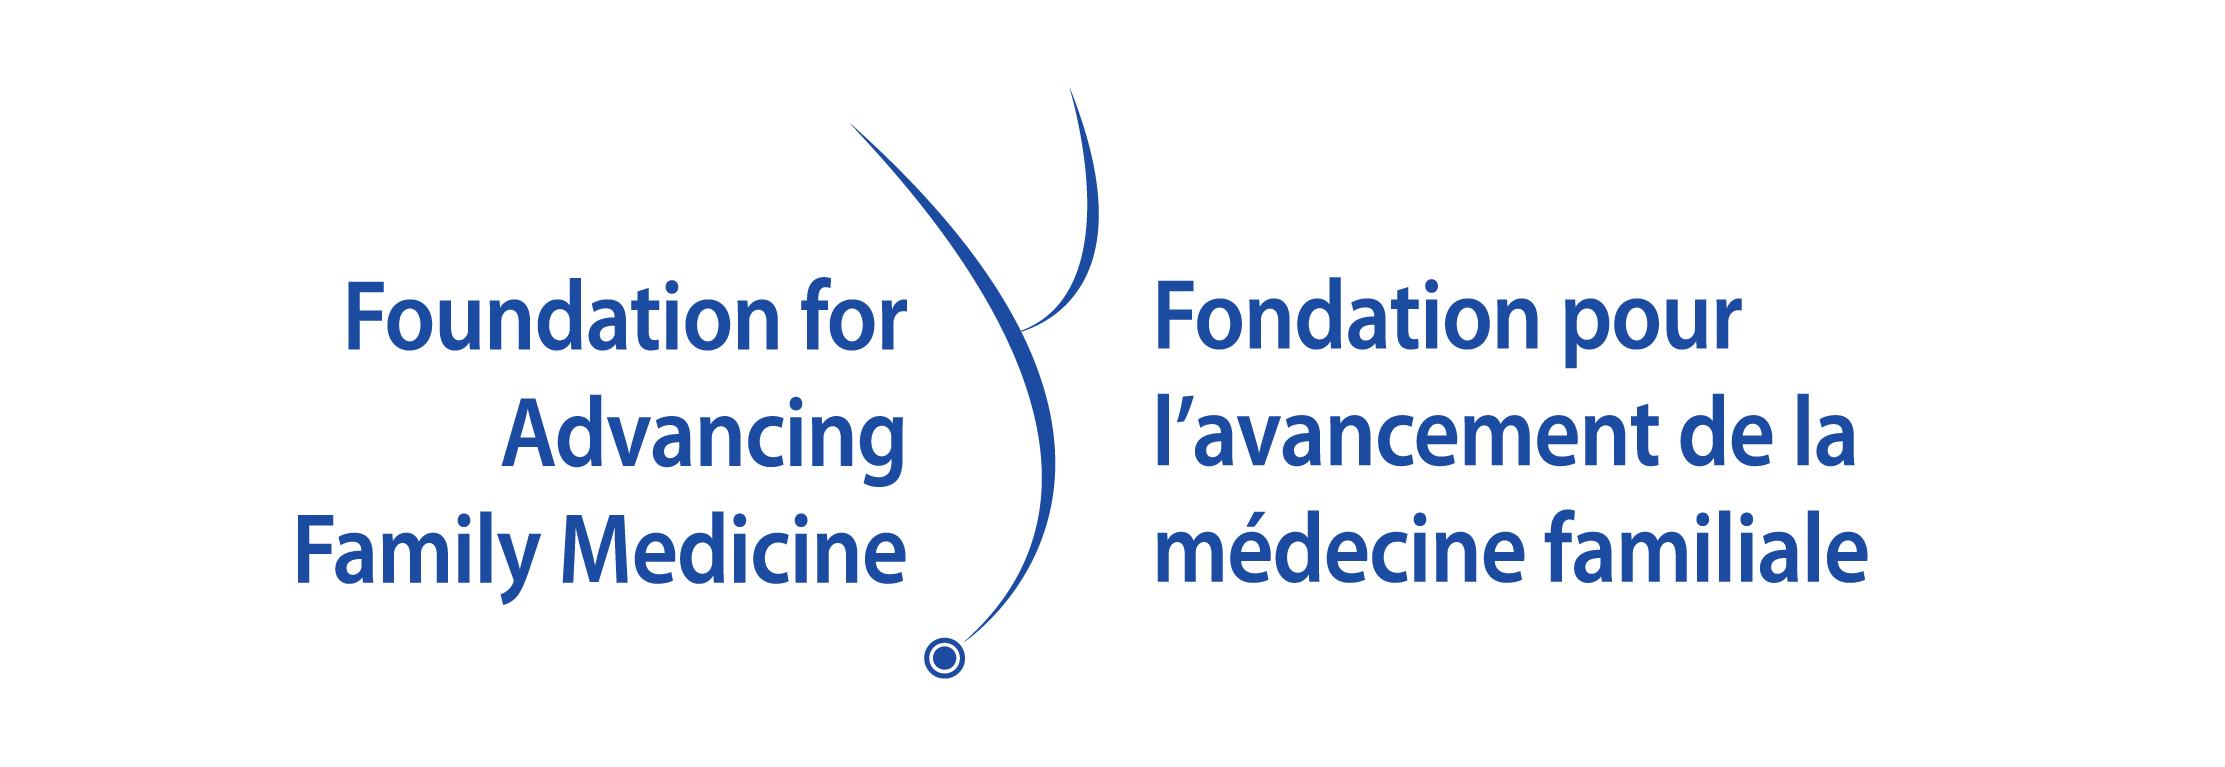 Foundation for Advancing Family Medicine